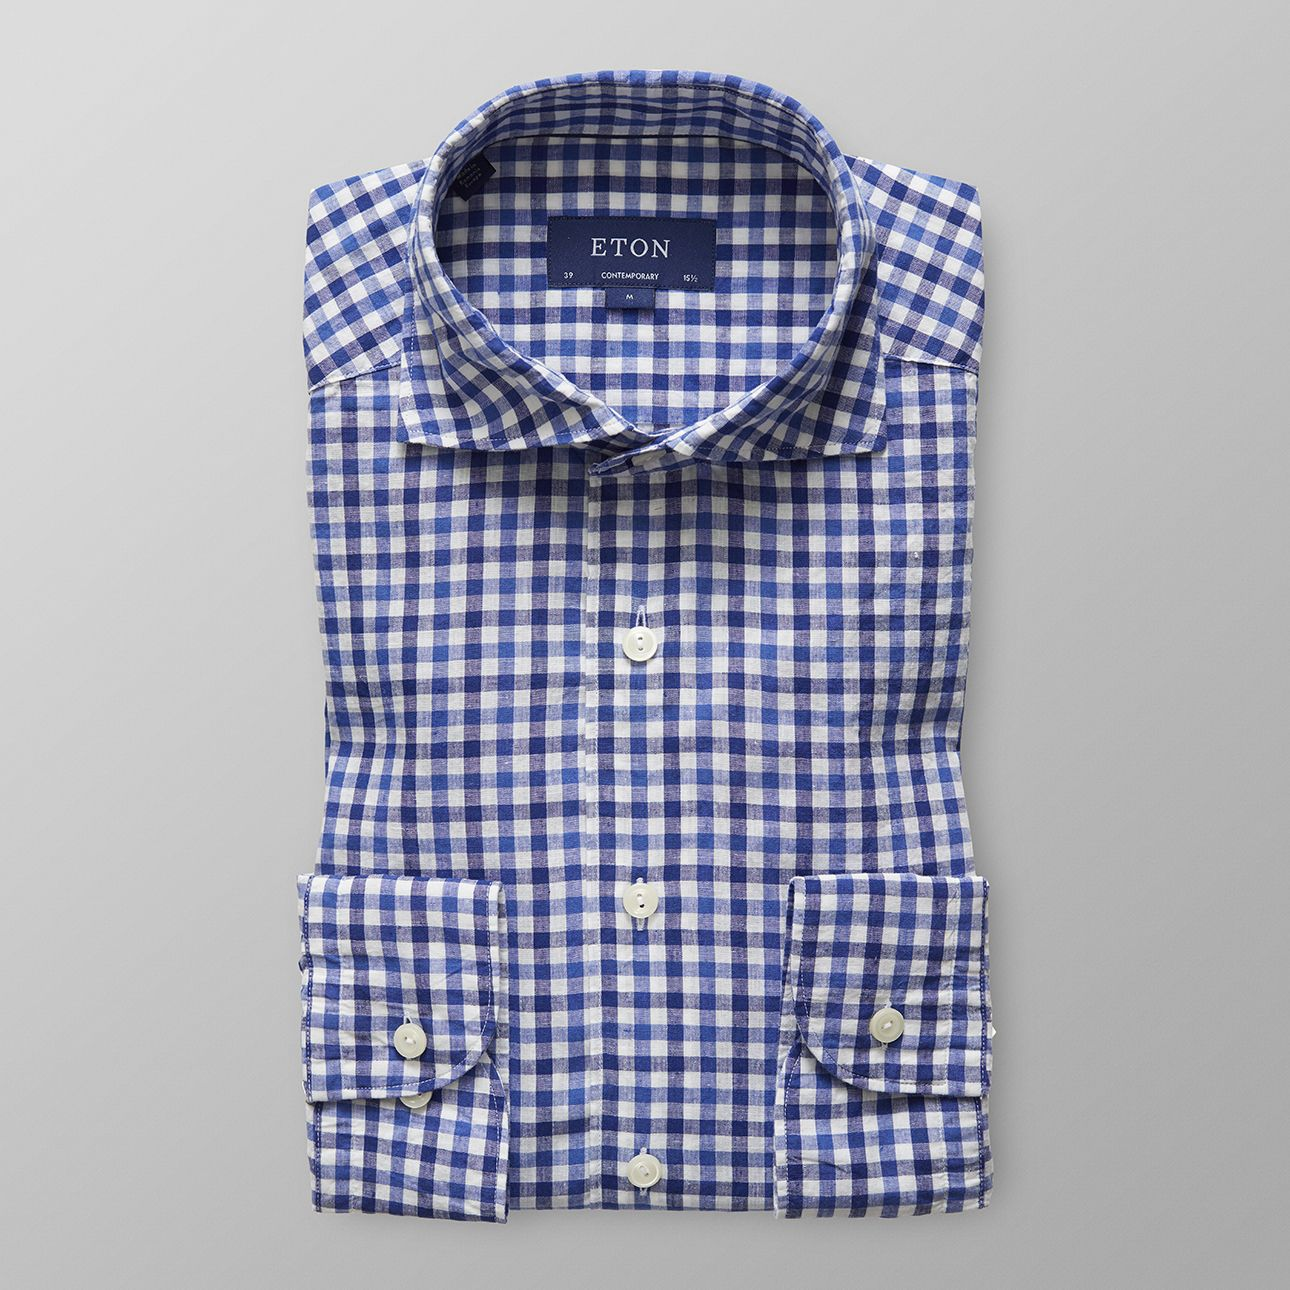 Soft Blue Cotton & Linen Gingham Check Shirt